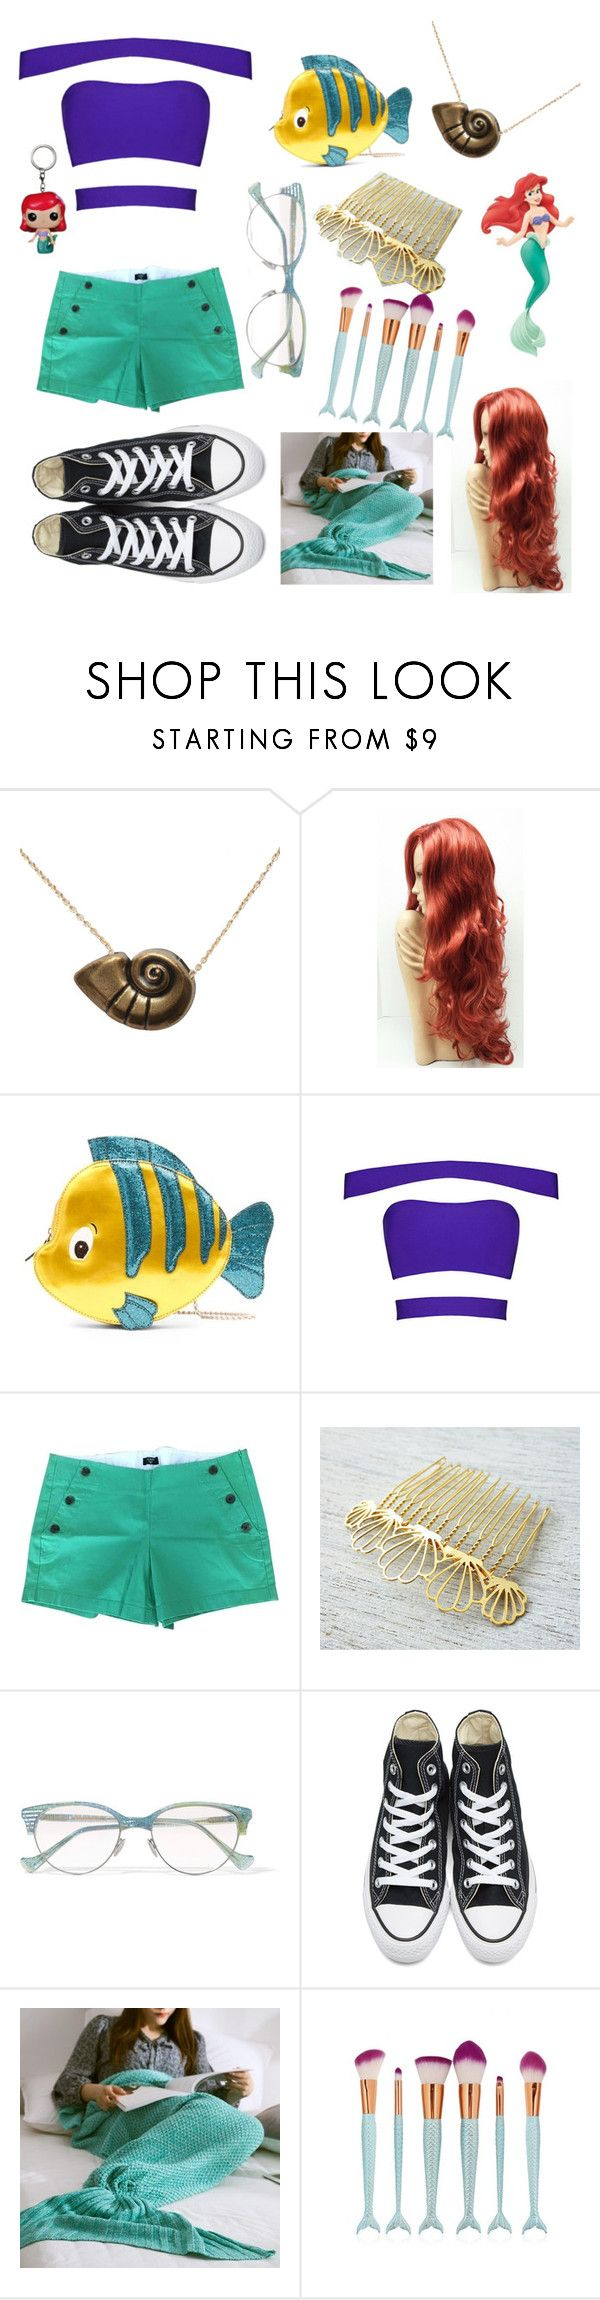 """the little mermaid is presented"" by happyascanbe855 ❤ liked on Polyvore featuring Disney, Danielle Nicole, J.Crew, shlomitofir, Cutler and Gross and Converse"